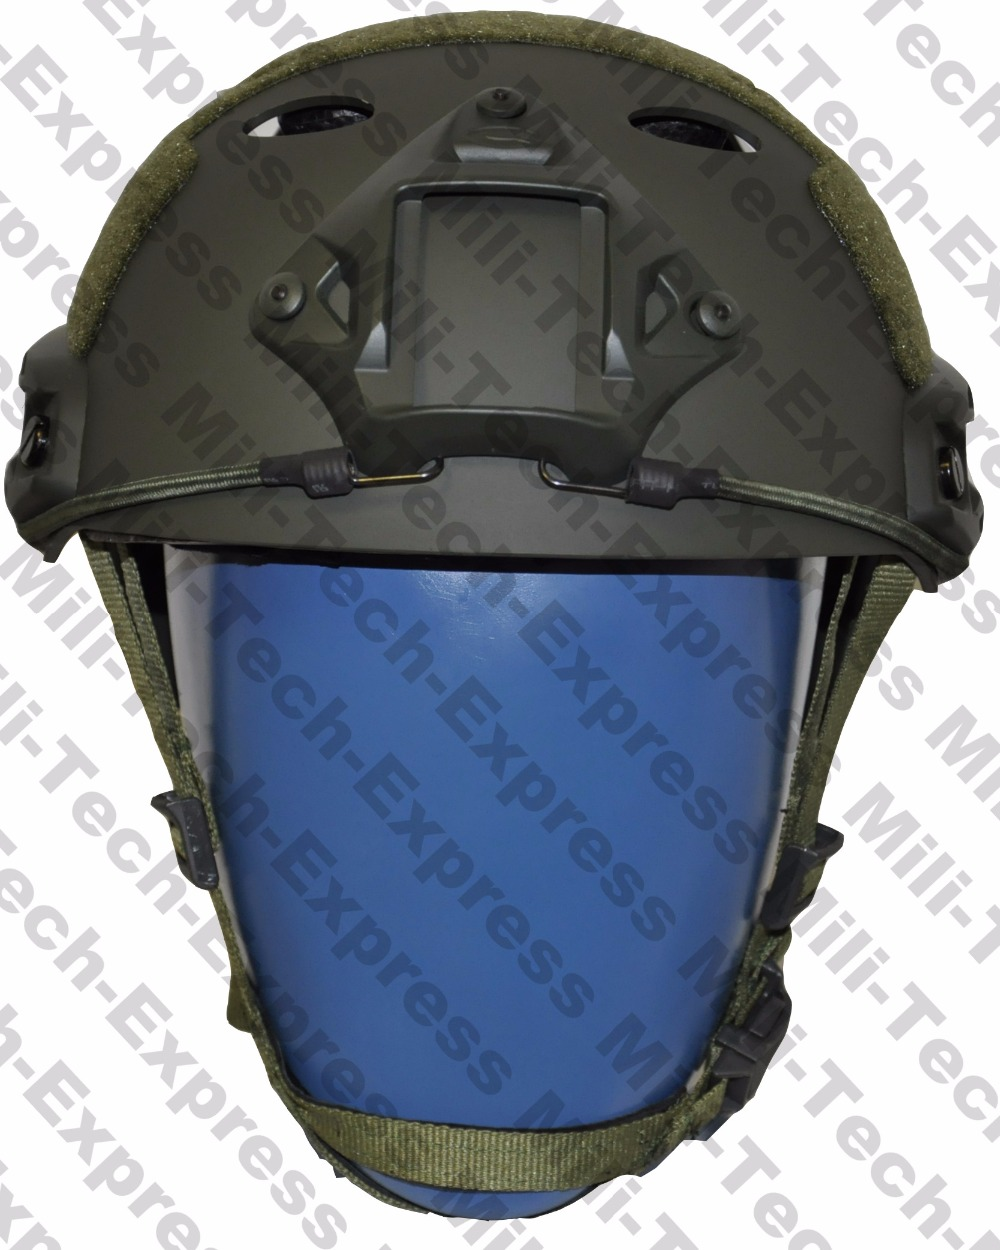 FAST OD PJ Carbon Style Vented Airsoft Tactical Helmet / Ops Core Style High Cut Training Helmet / FAST Ballistic Style Helmet. fast kryptek fa style super abs airsoft tactical helmet ops core style high cut training helmet fast ballistic style helmet